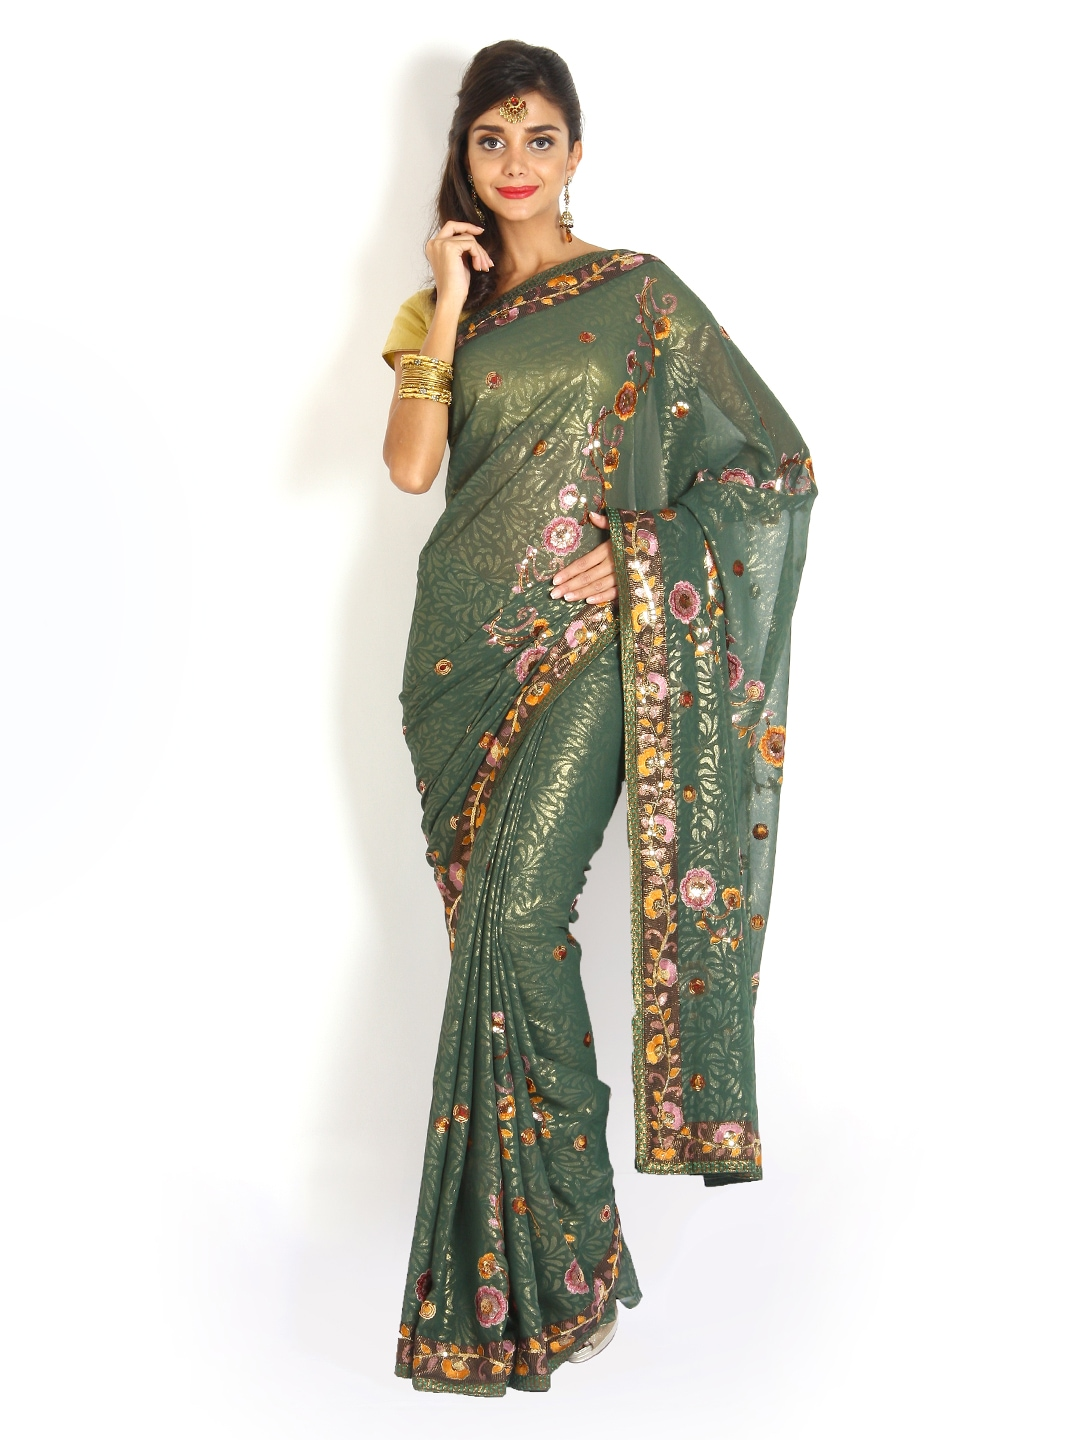 Vritika Green Embroidered Georgette Fashion Saree available at Myntra for Rs.216720